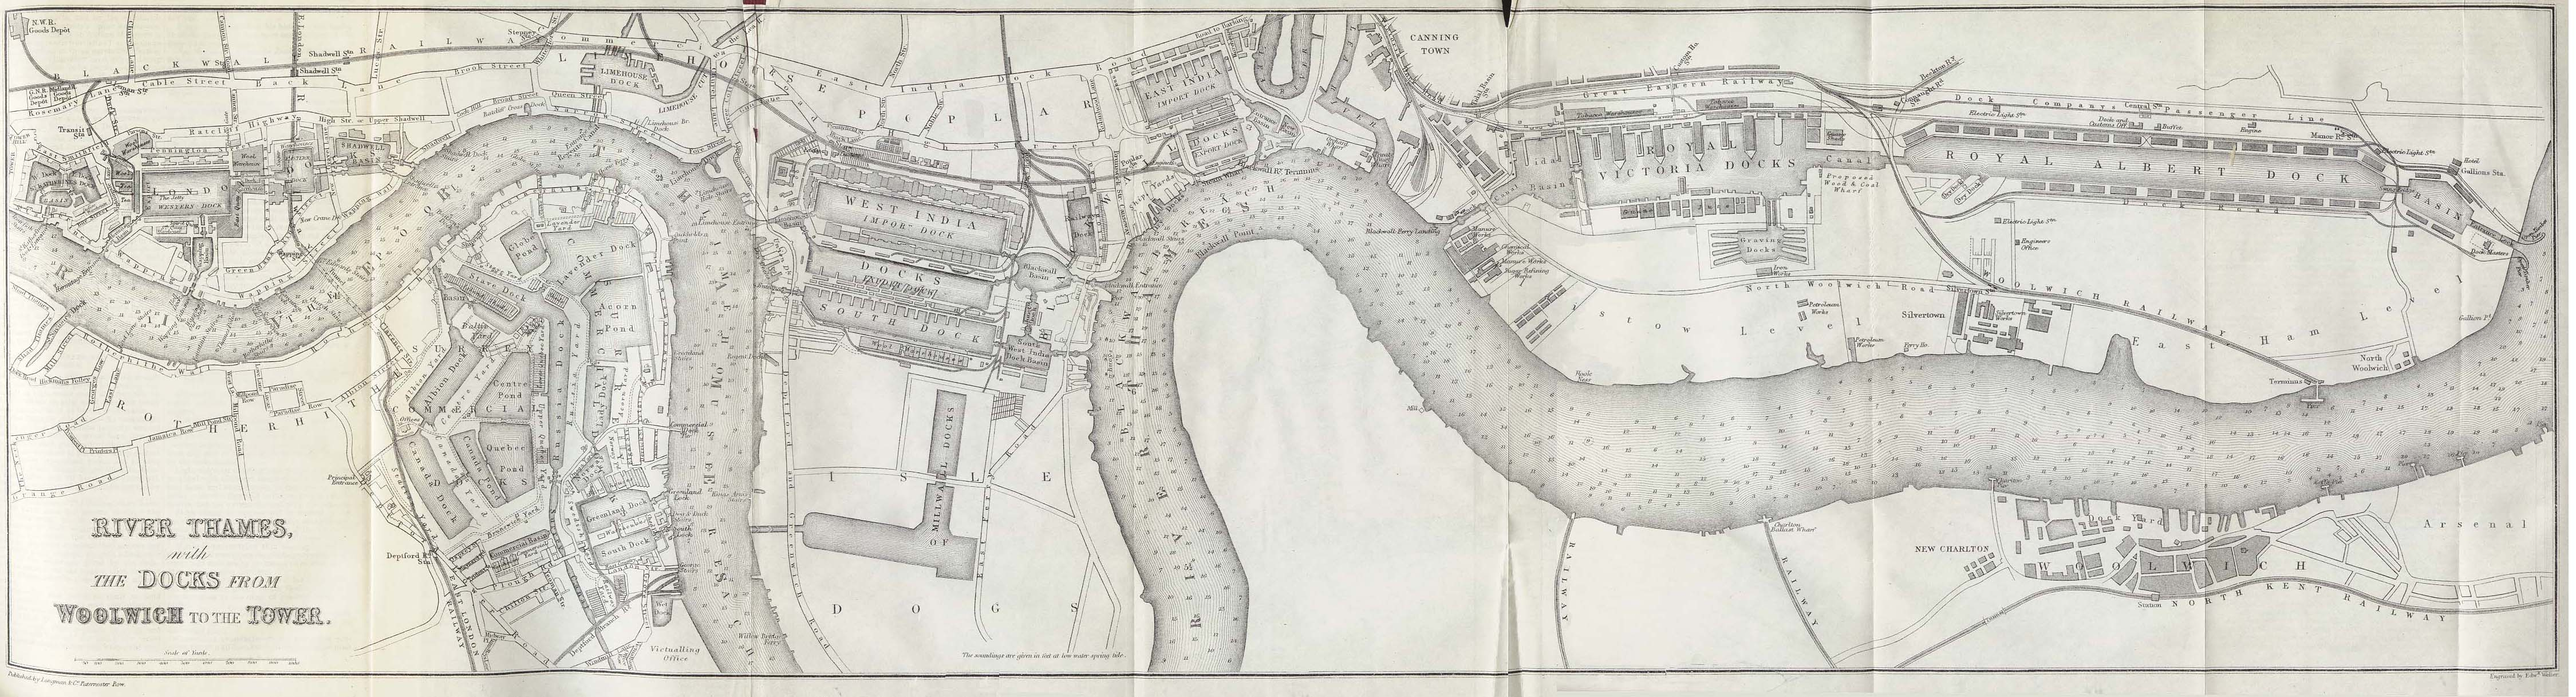 London 1600 Map.File Thames River 1882 Jpg Wikimedia Commons